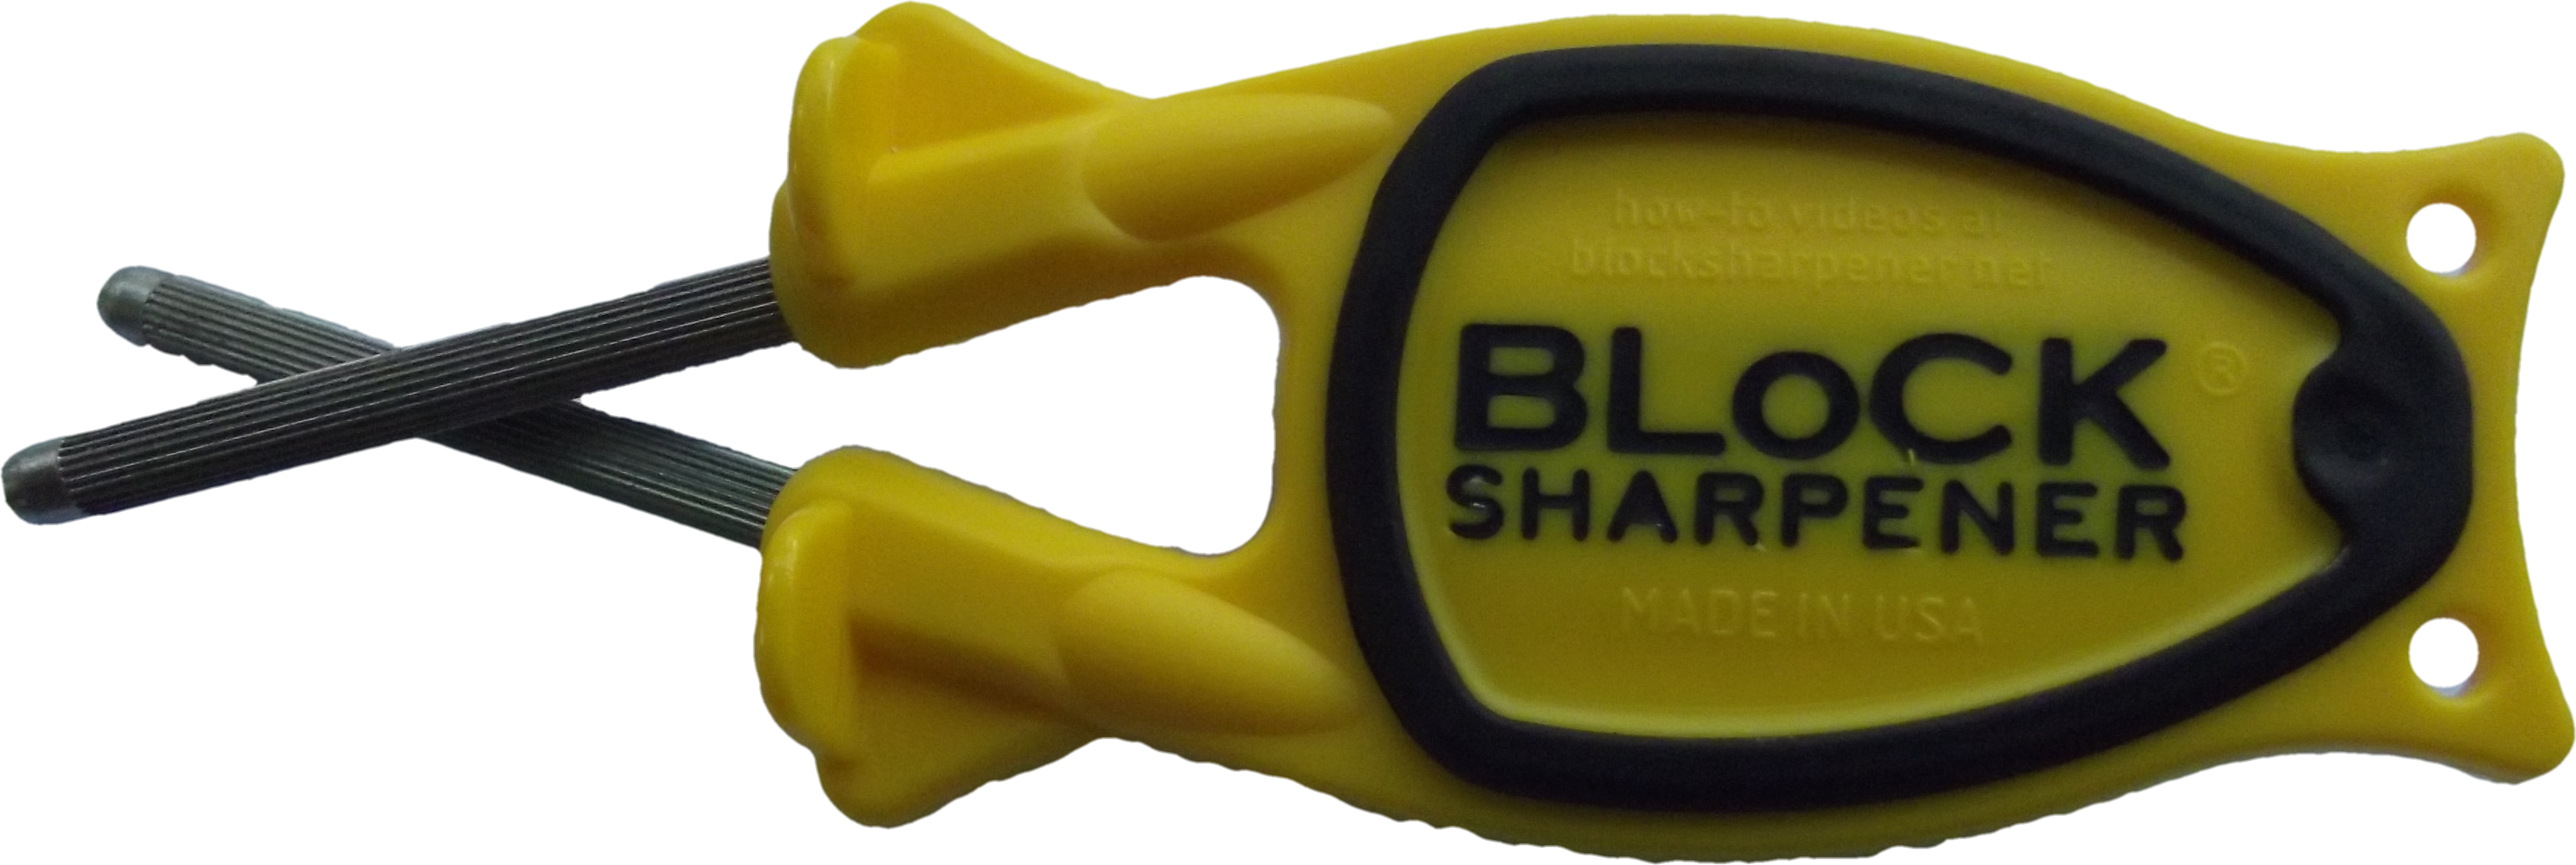 why choose the block knife sharpeners - Knife Sharpener